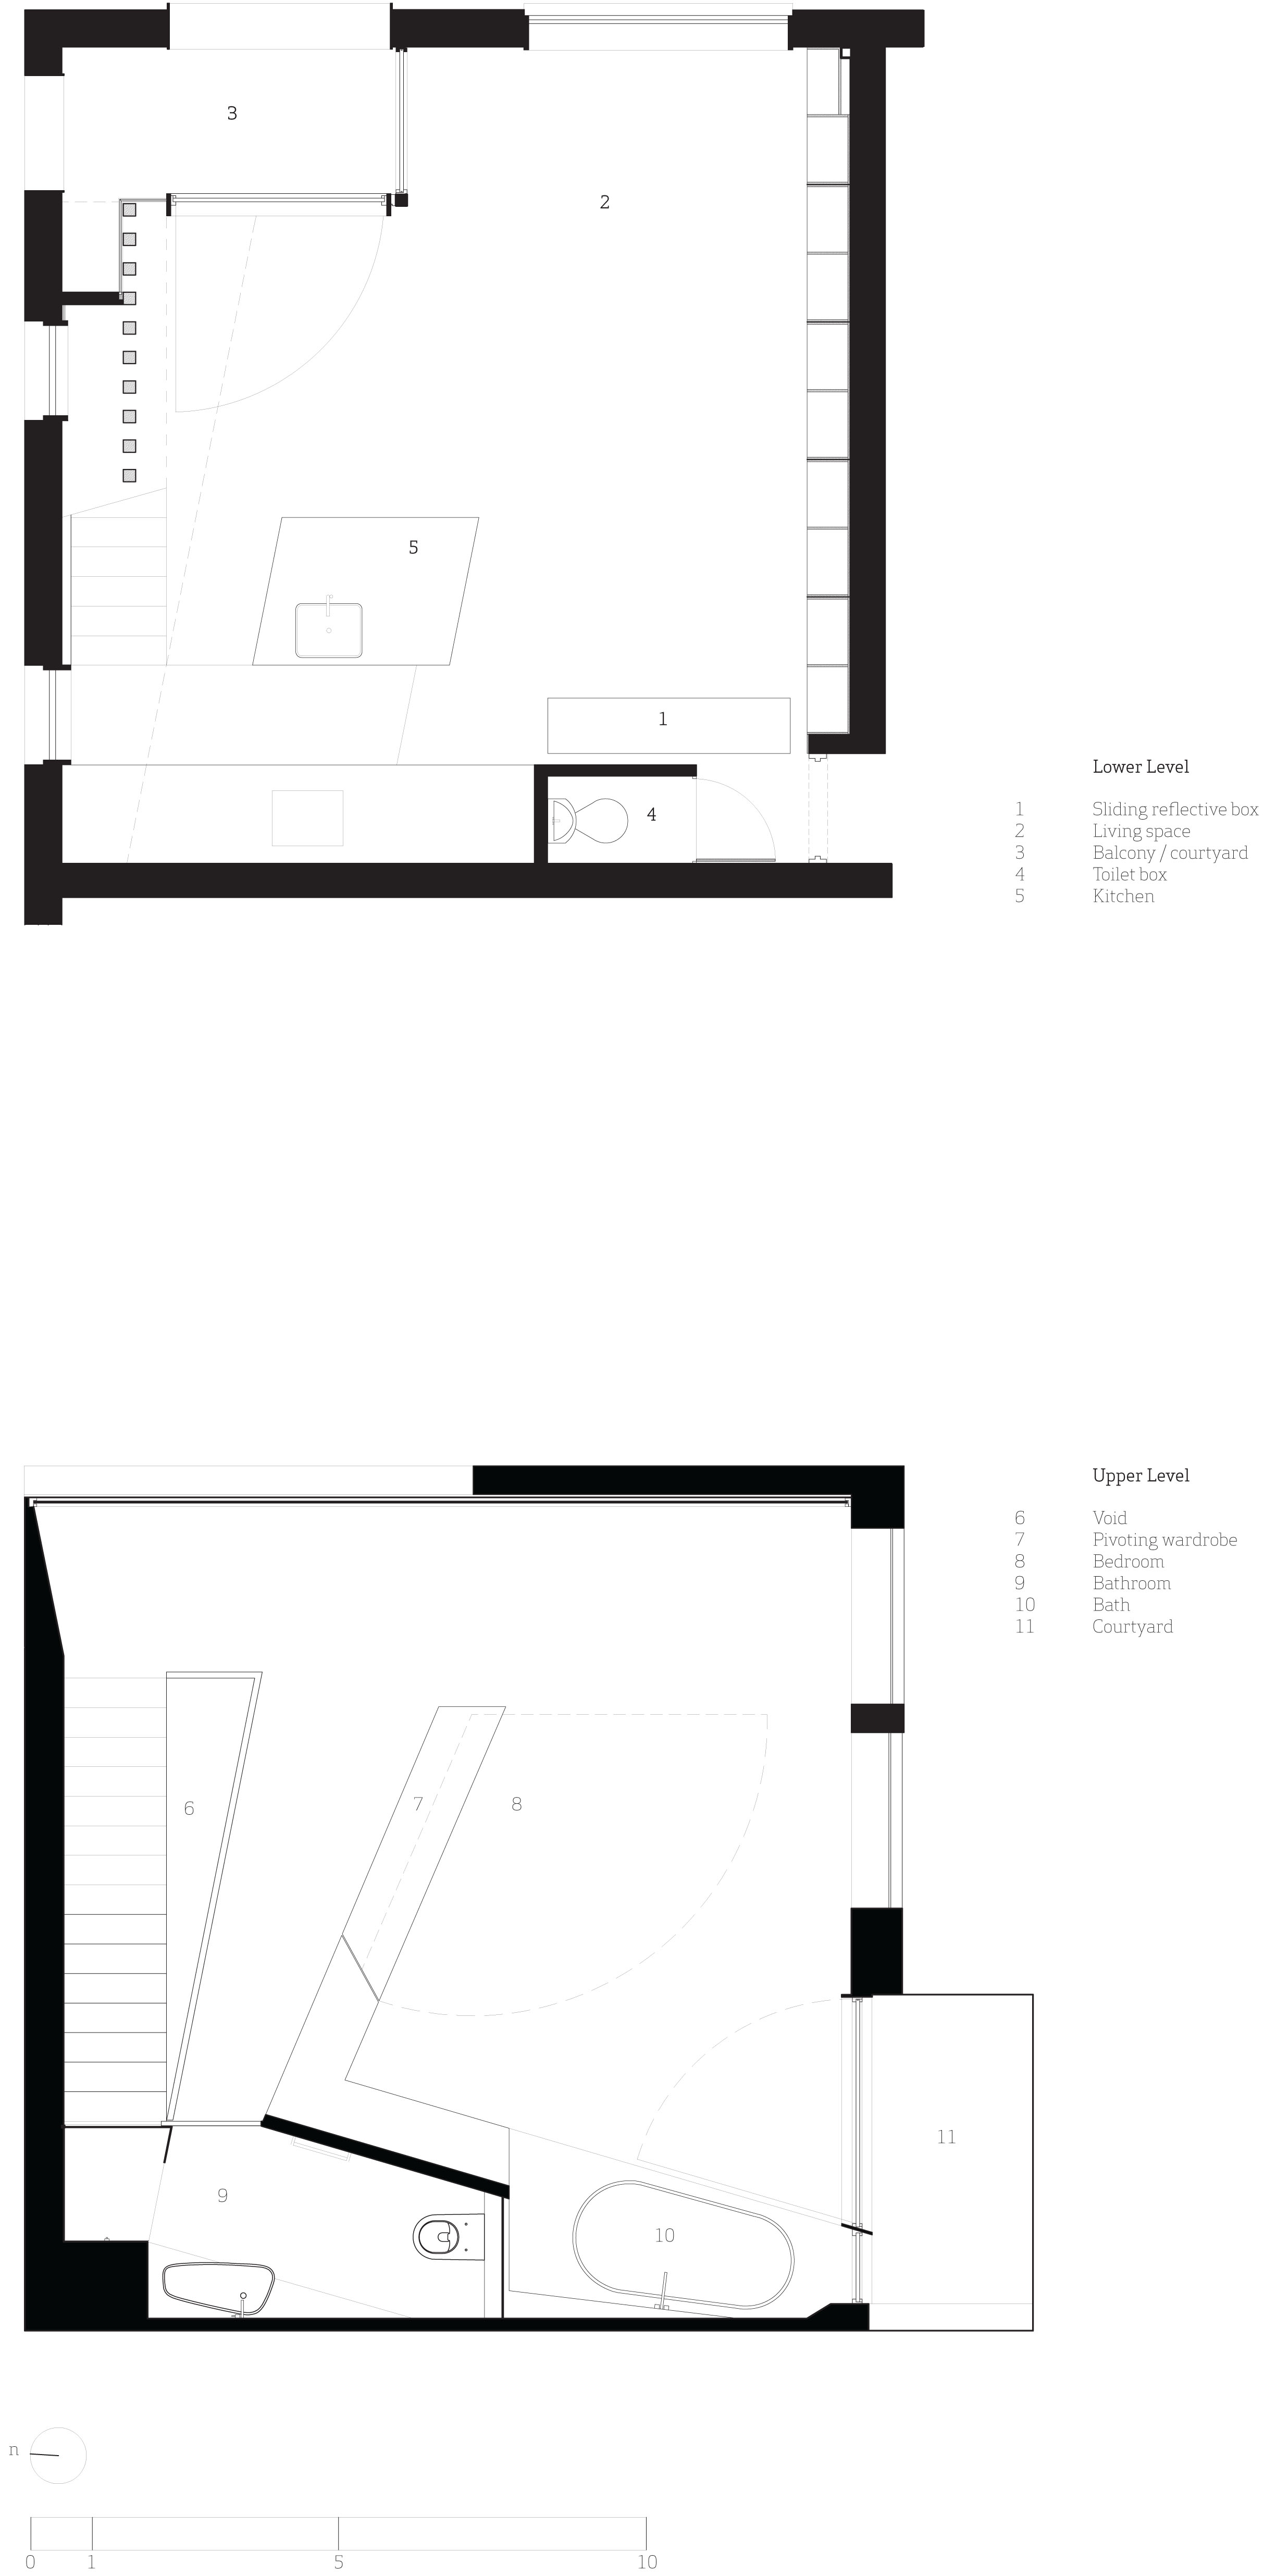 Cubby House floor plan for the lower and upper levels